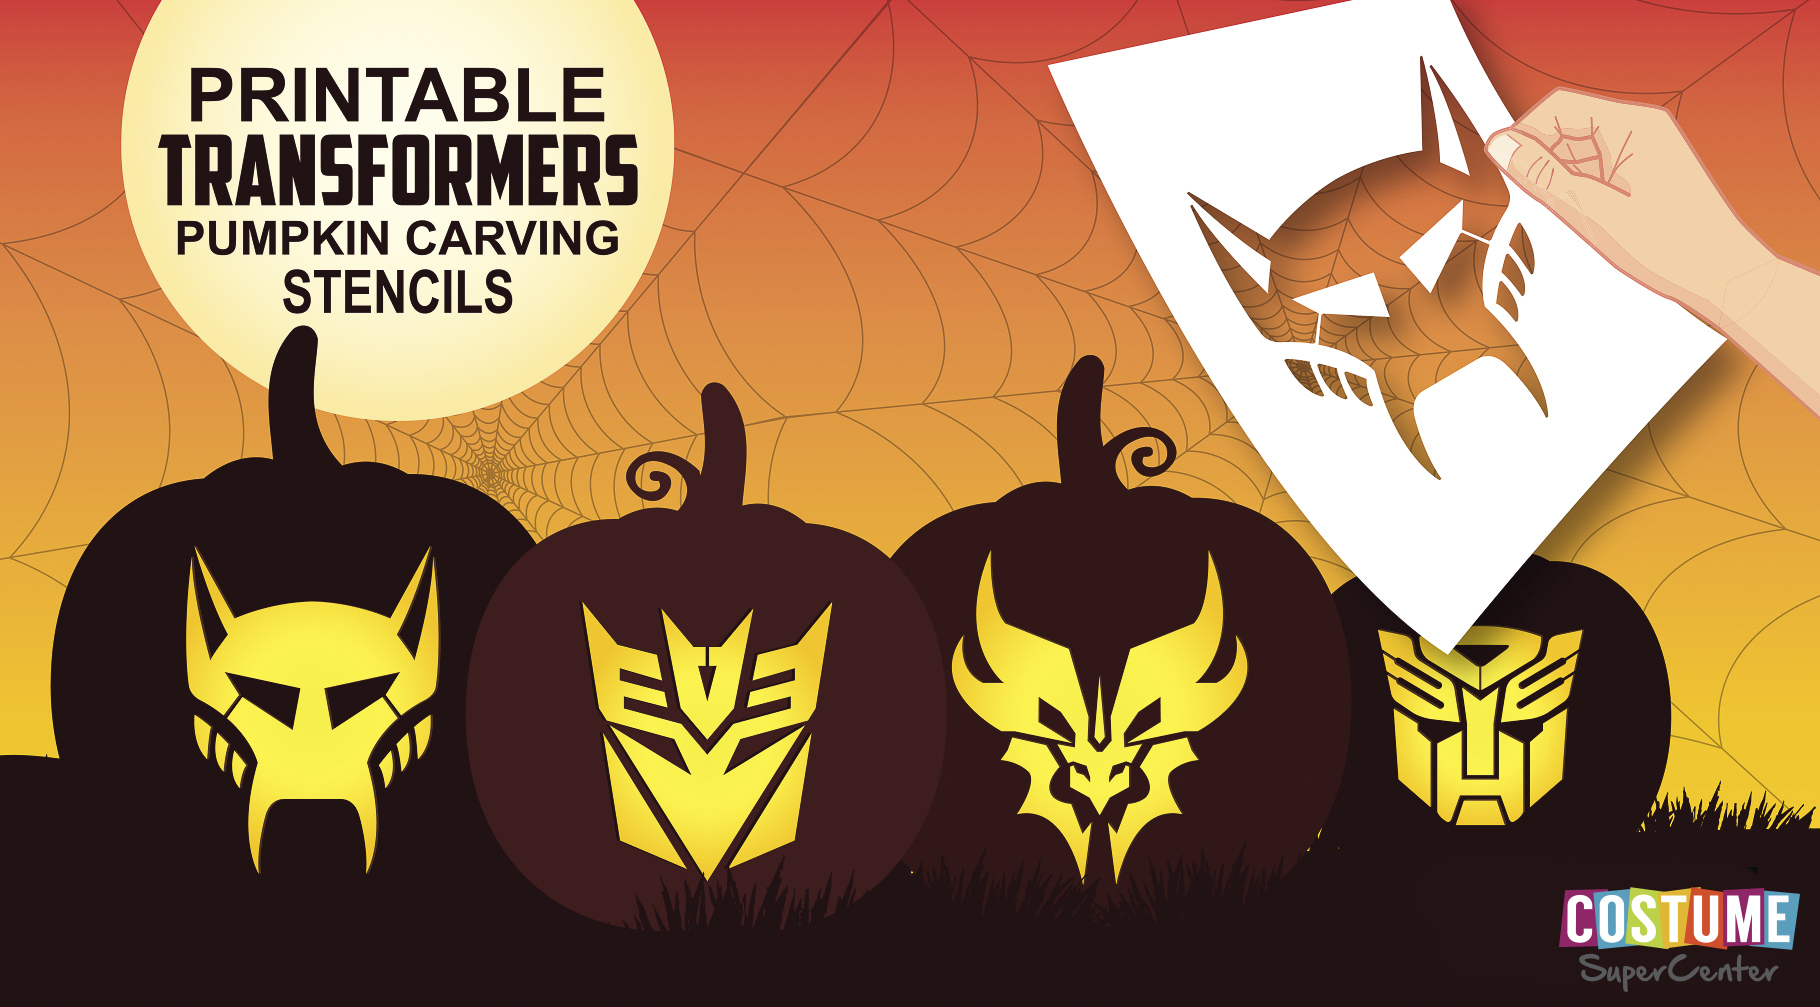 Free Transformer Pumpkin Carving Stencils | Costume Supercenter Blog - Free Printable Pumpkin Carving Stencils